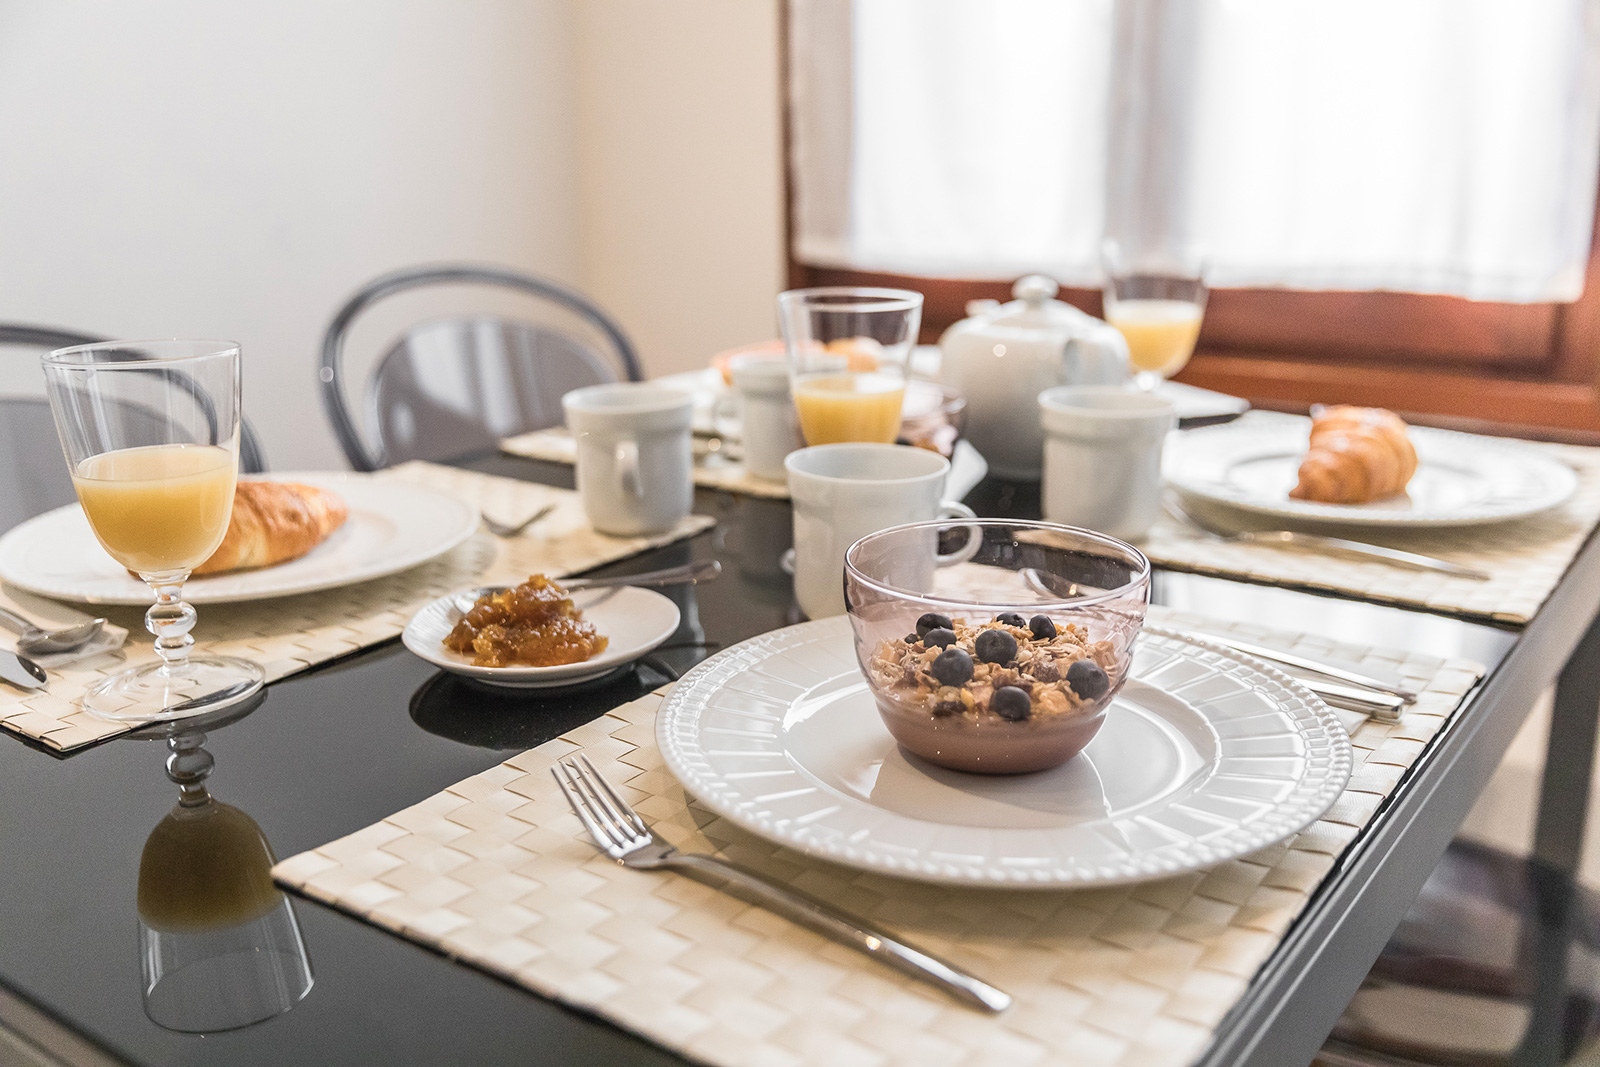 enjoy having breakfast with your family before a day exploring Venice!